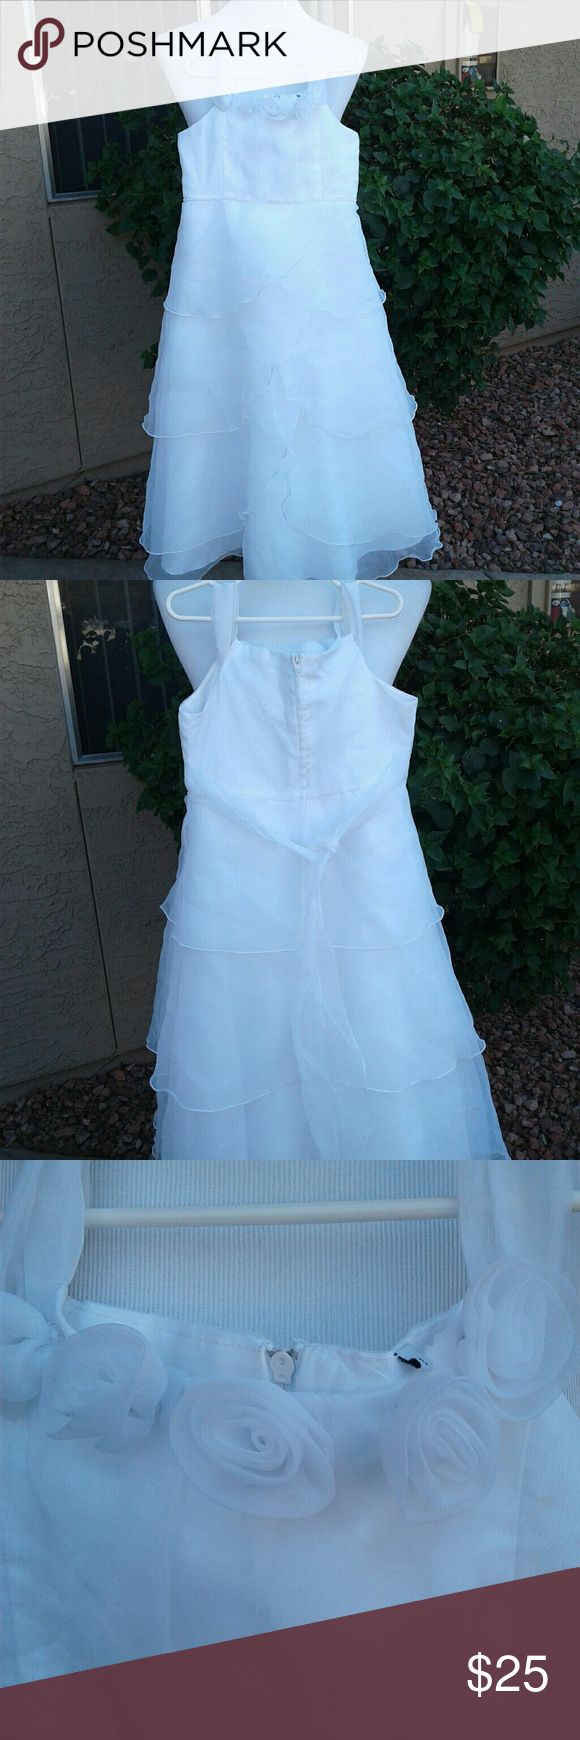 SIMPLE BUT ELEGANT FLOWER GIRL DRESS SIZE 8 CUTE PLAIN WHITE DRESS WITH ROSES AT TOP LAYERED CHIFFON Dresses Formal